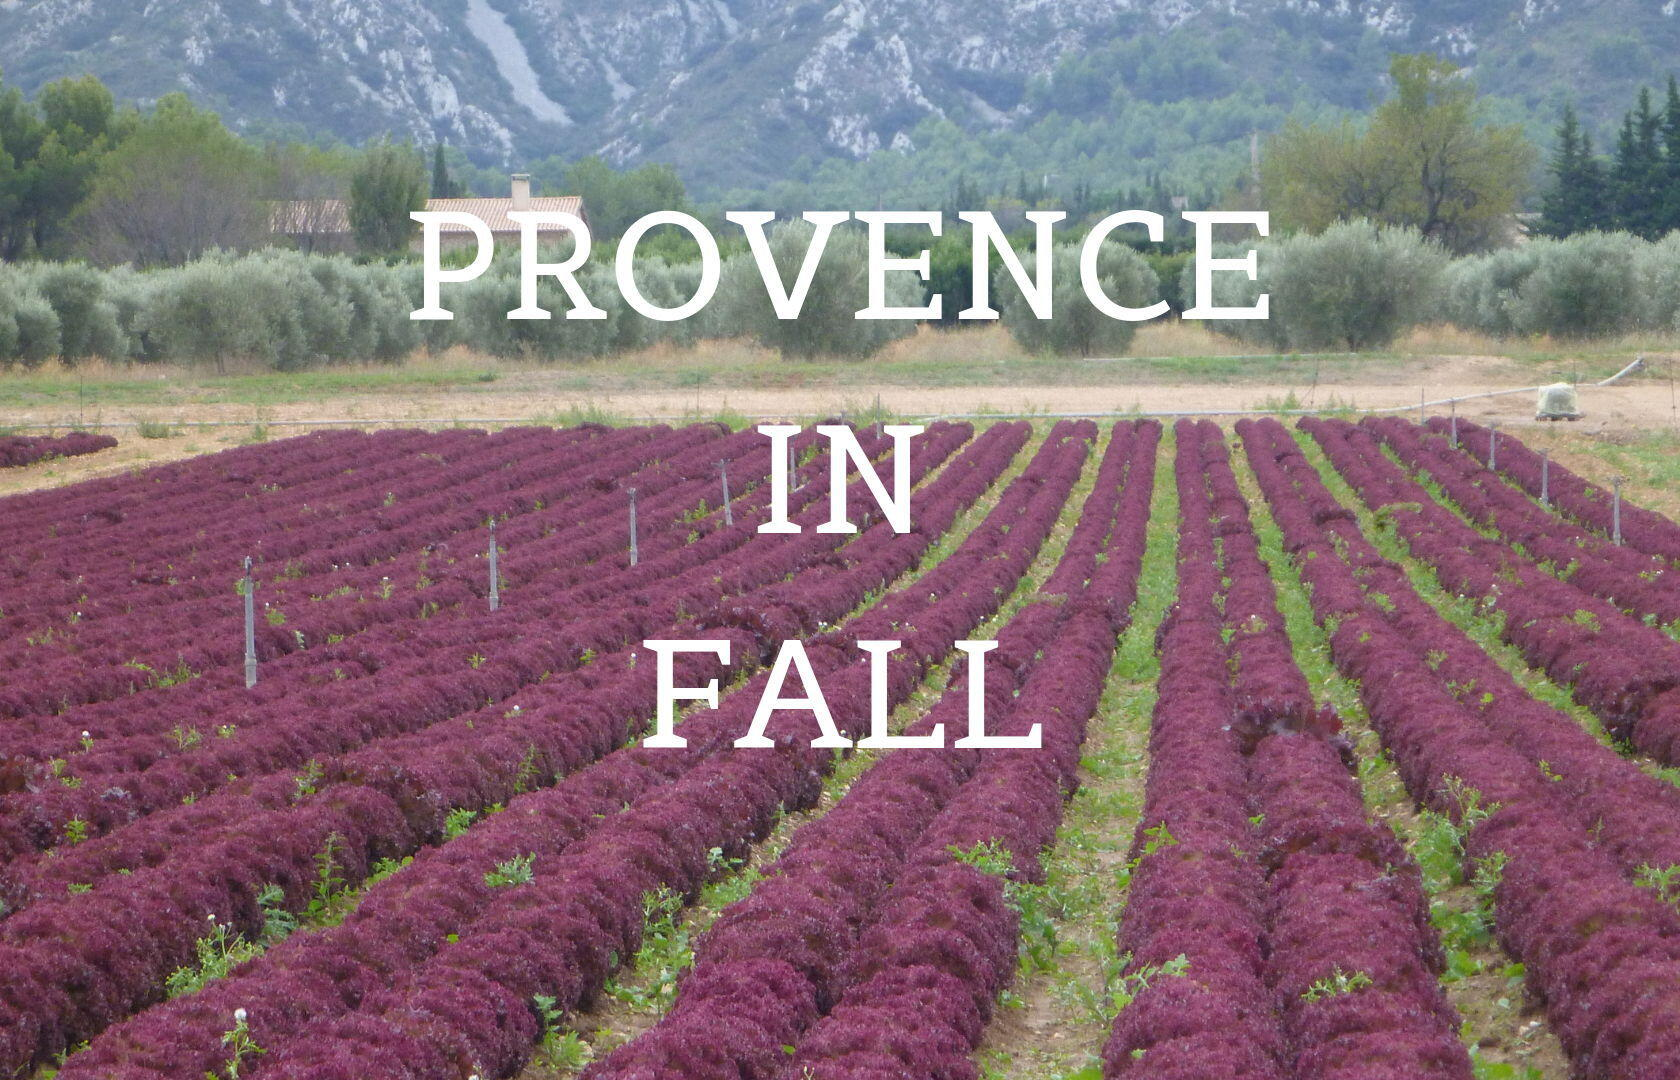 Provence Fall Festivals Flowers